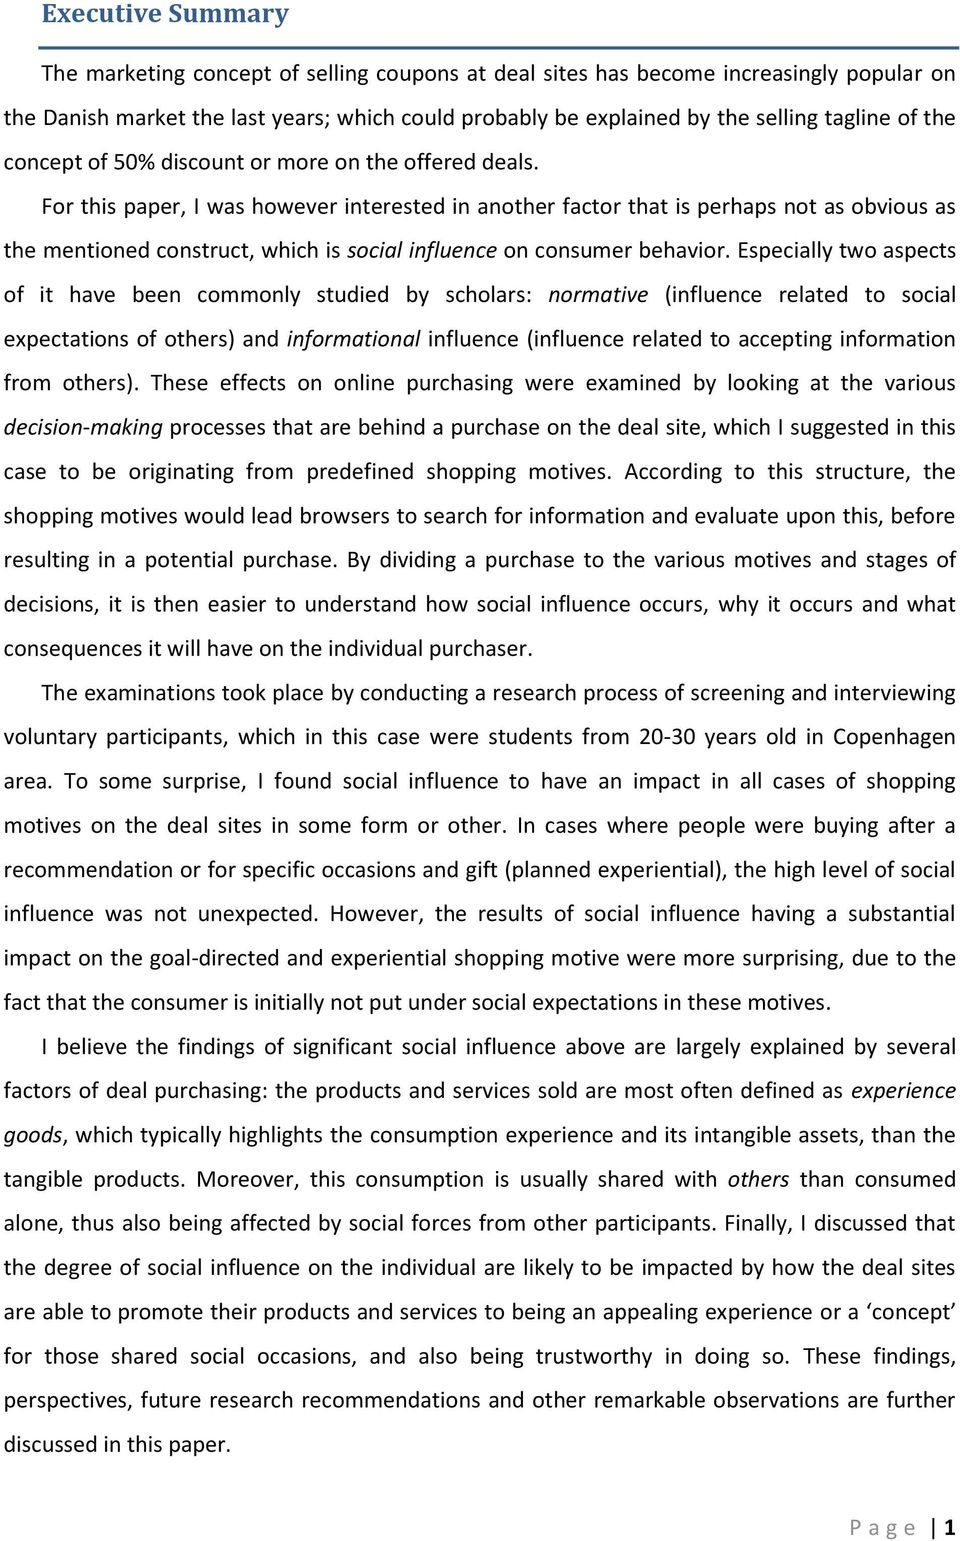 For this paper, I was however interested in another factor that is perhaps not as obvious as the mentioned construct, which is social influence on consumer behavior.